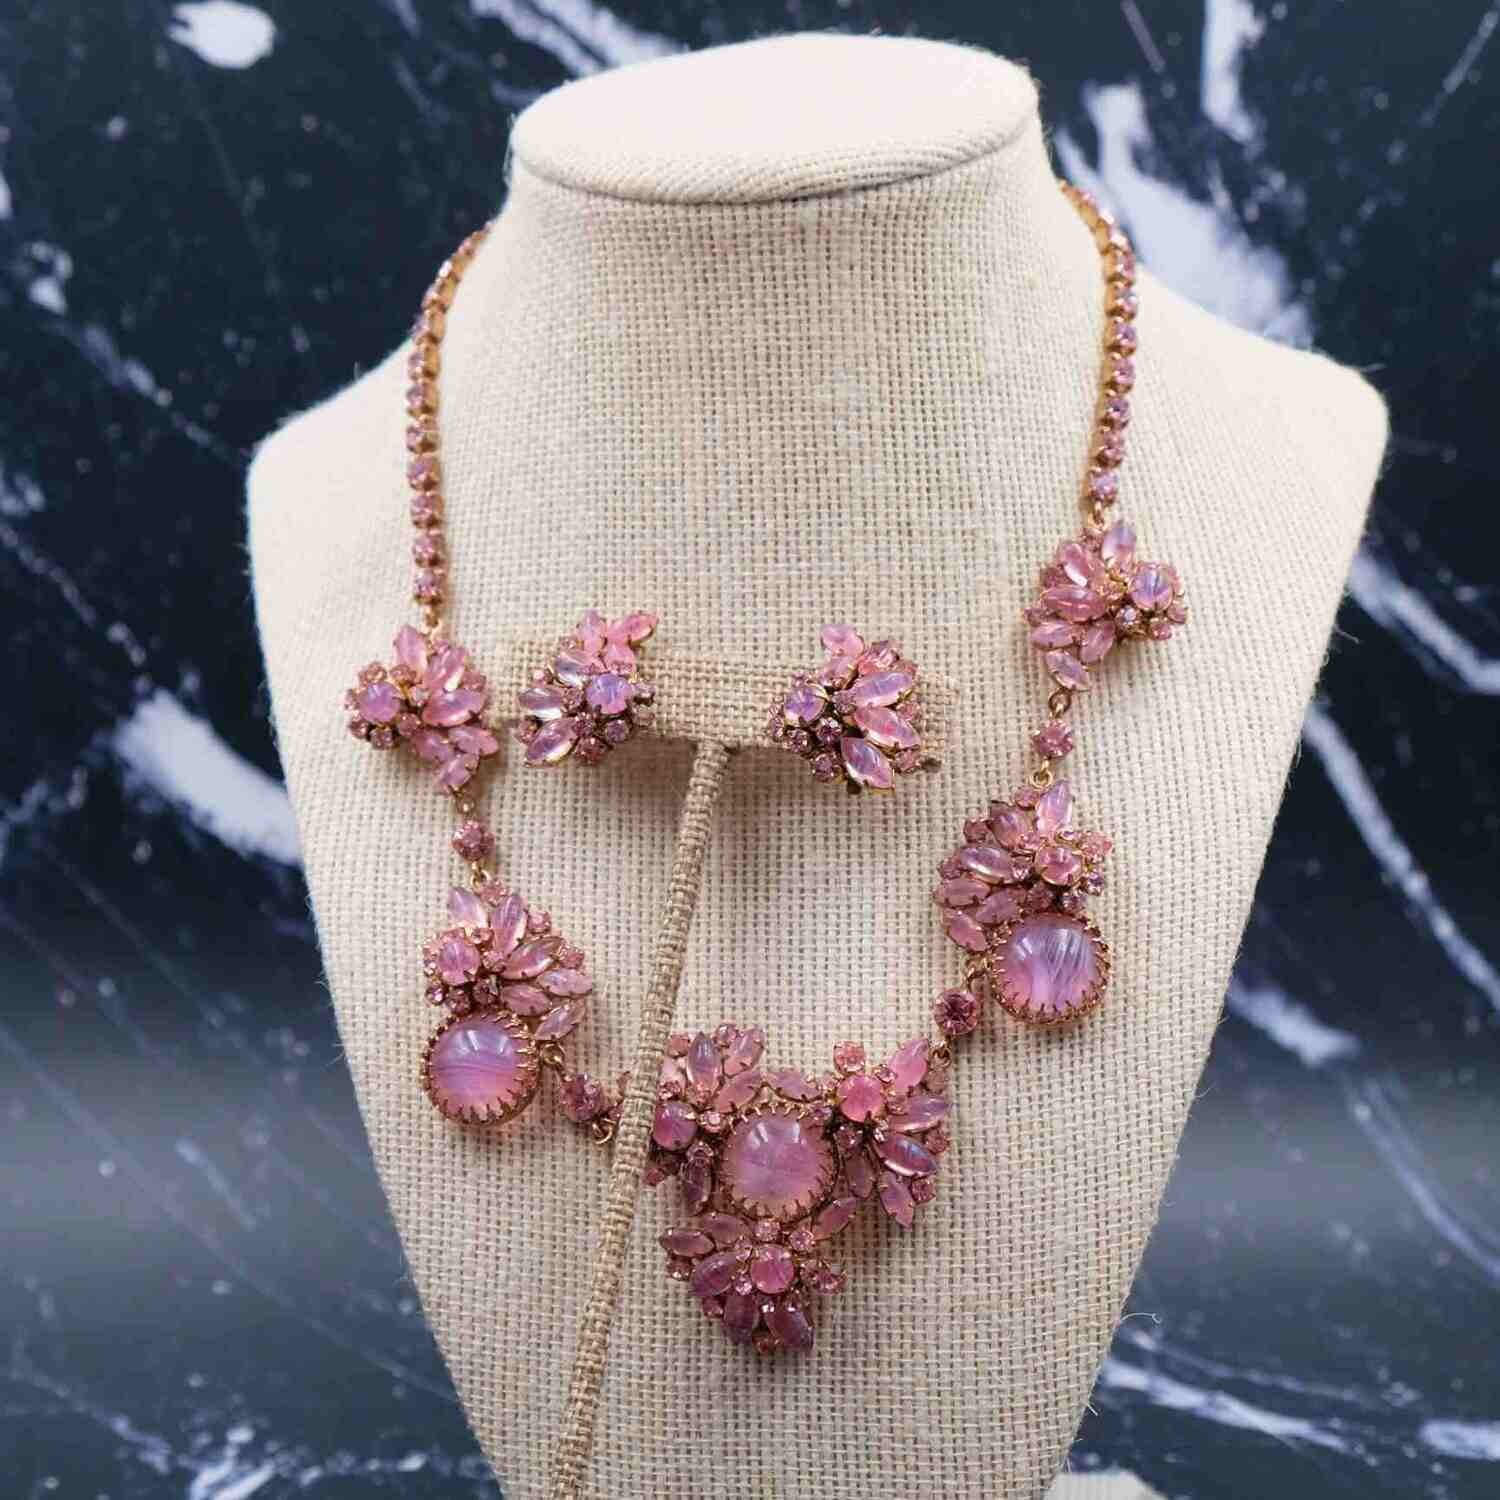 Vintage Schuberth Necklace and Earrings set 1950's Made in Austria